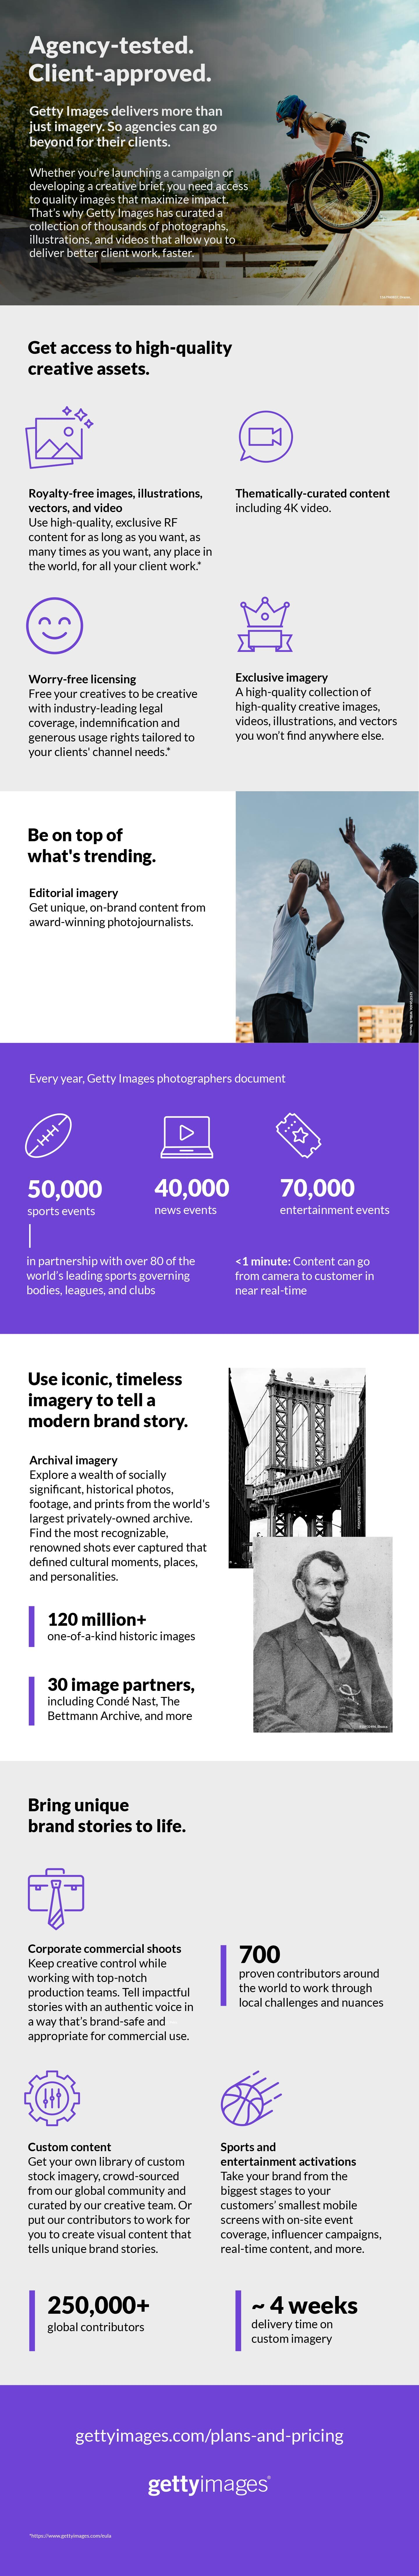 Getty-Images-for-Agencies-Infographic.jpg